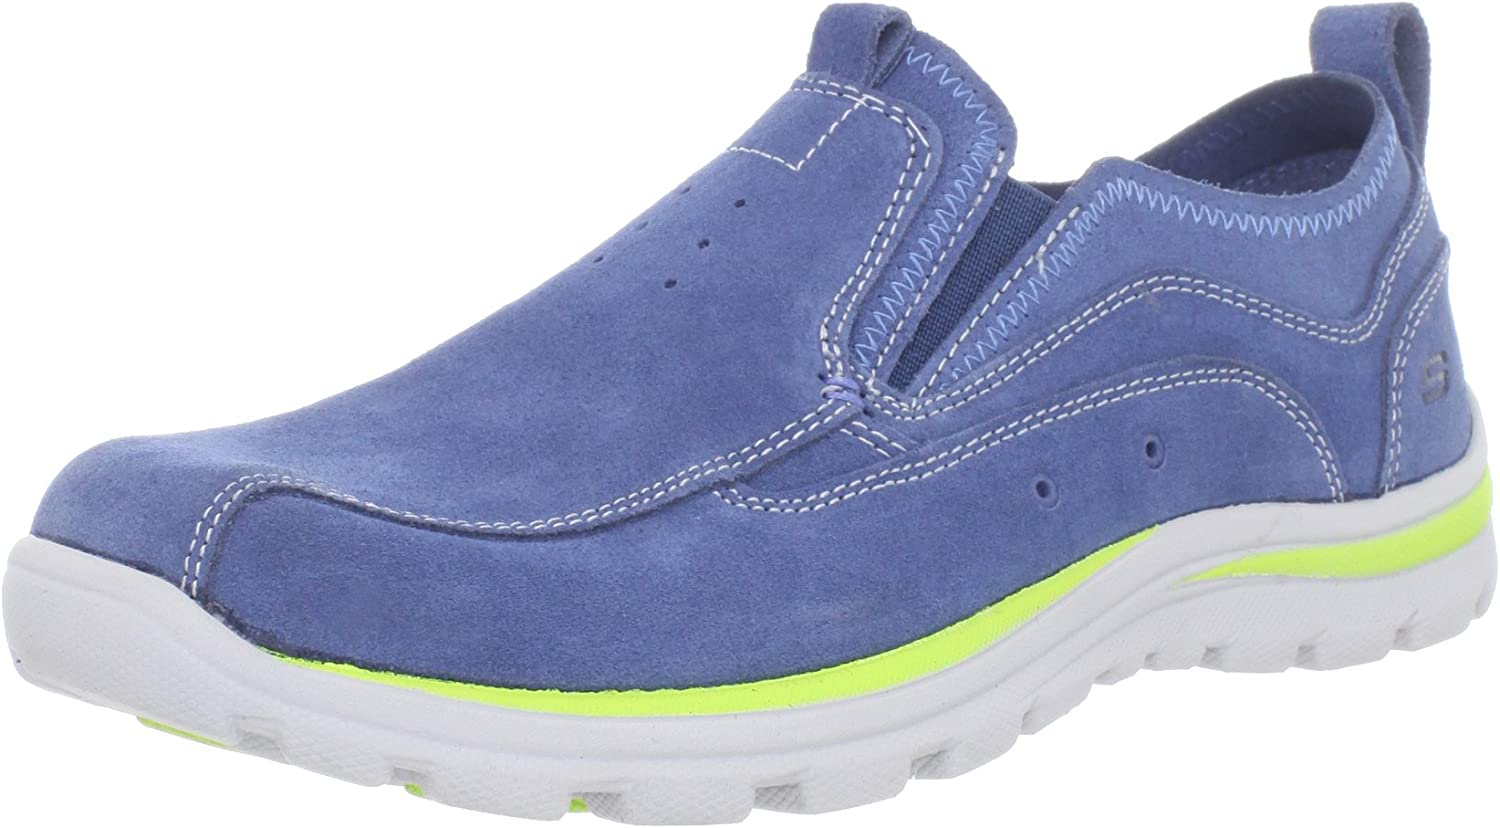 Skechers USA Men's Relaxed Fit